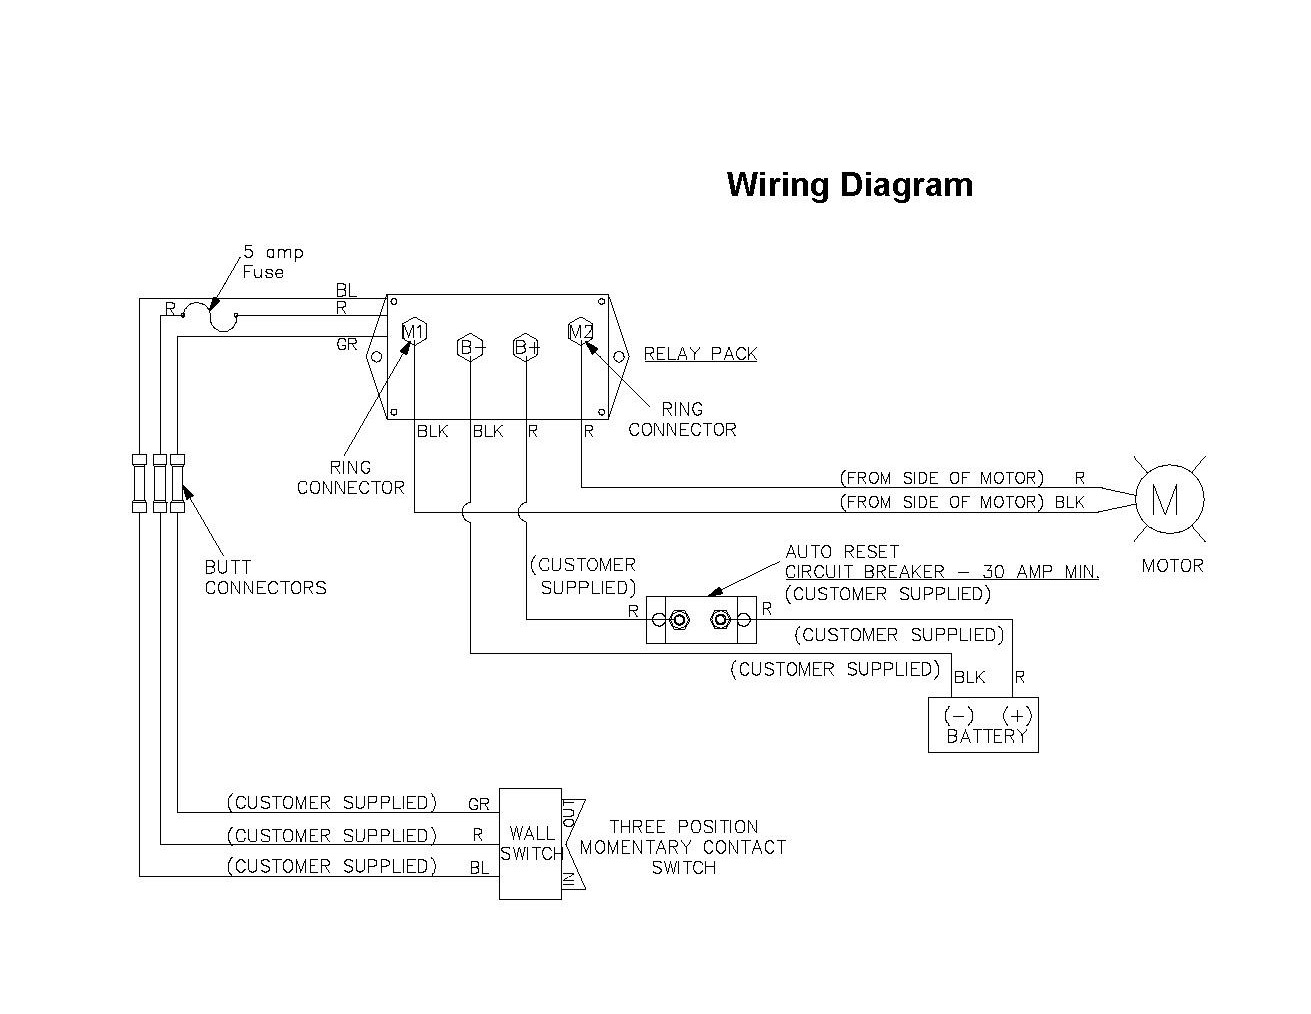 2014 07 21_160427_dewald_relay_wiring_diagram keystone rv wiring diagram rv electrical system diagram \u2022 free power gear slide out wiring diagram at crackthecode.co